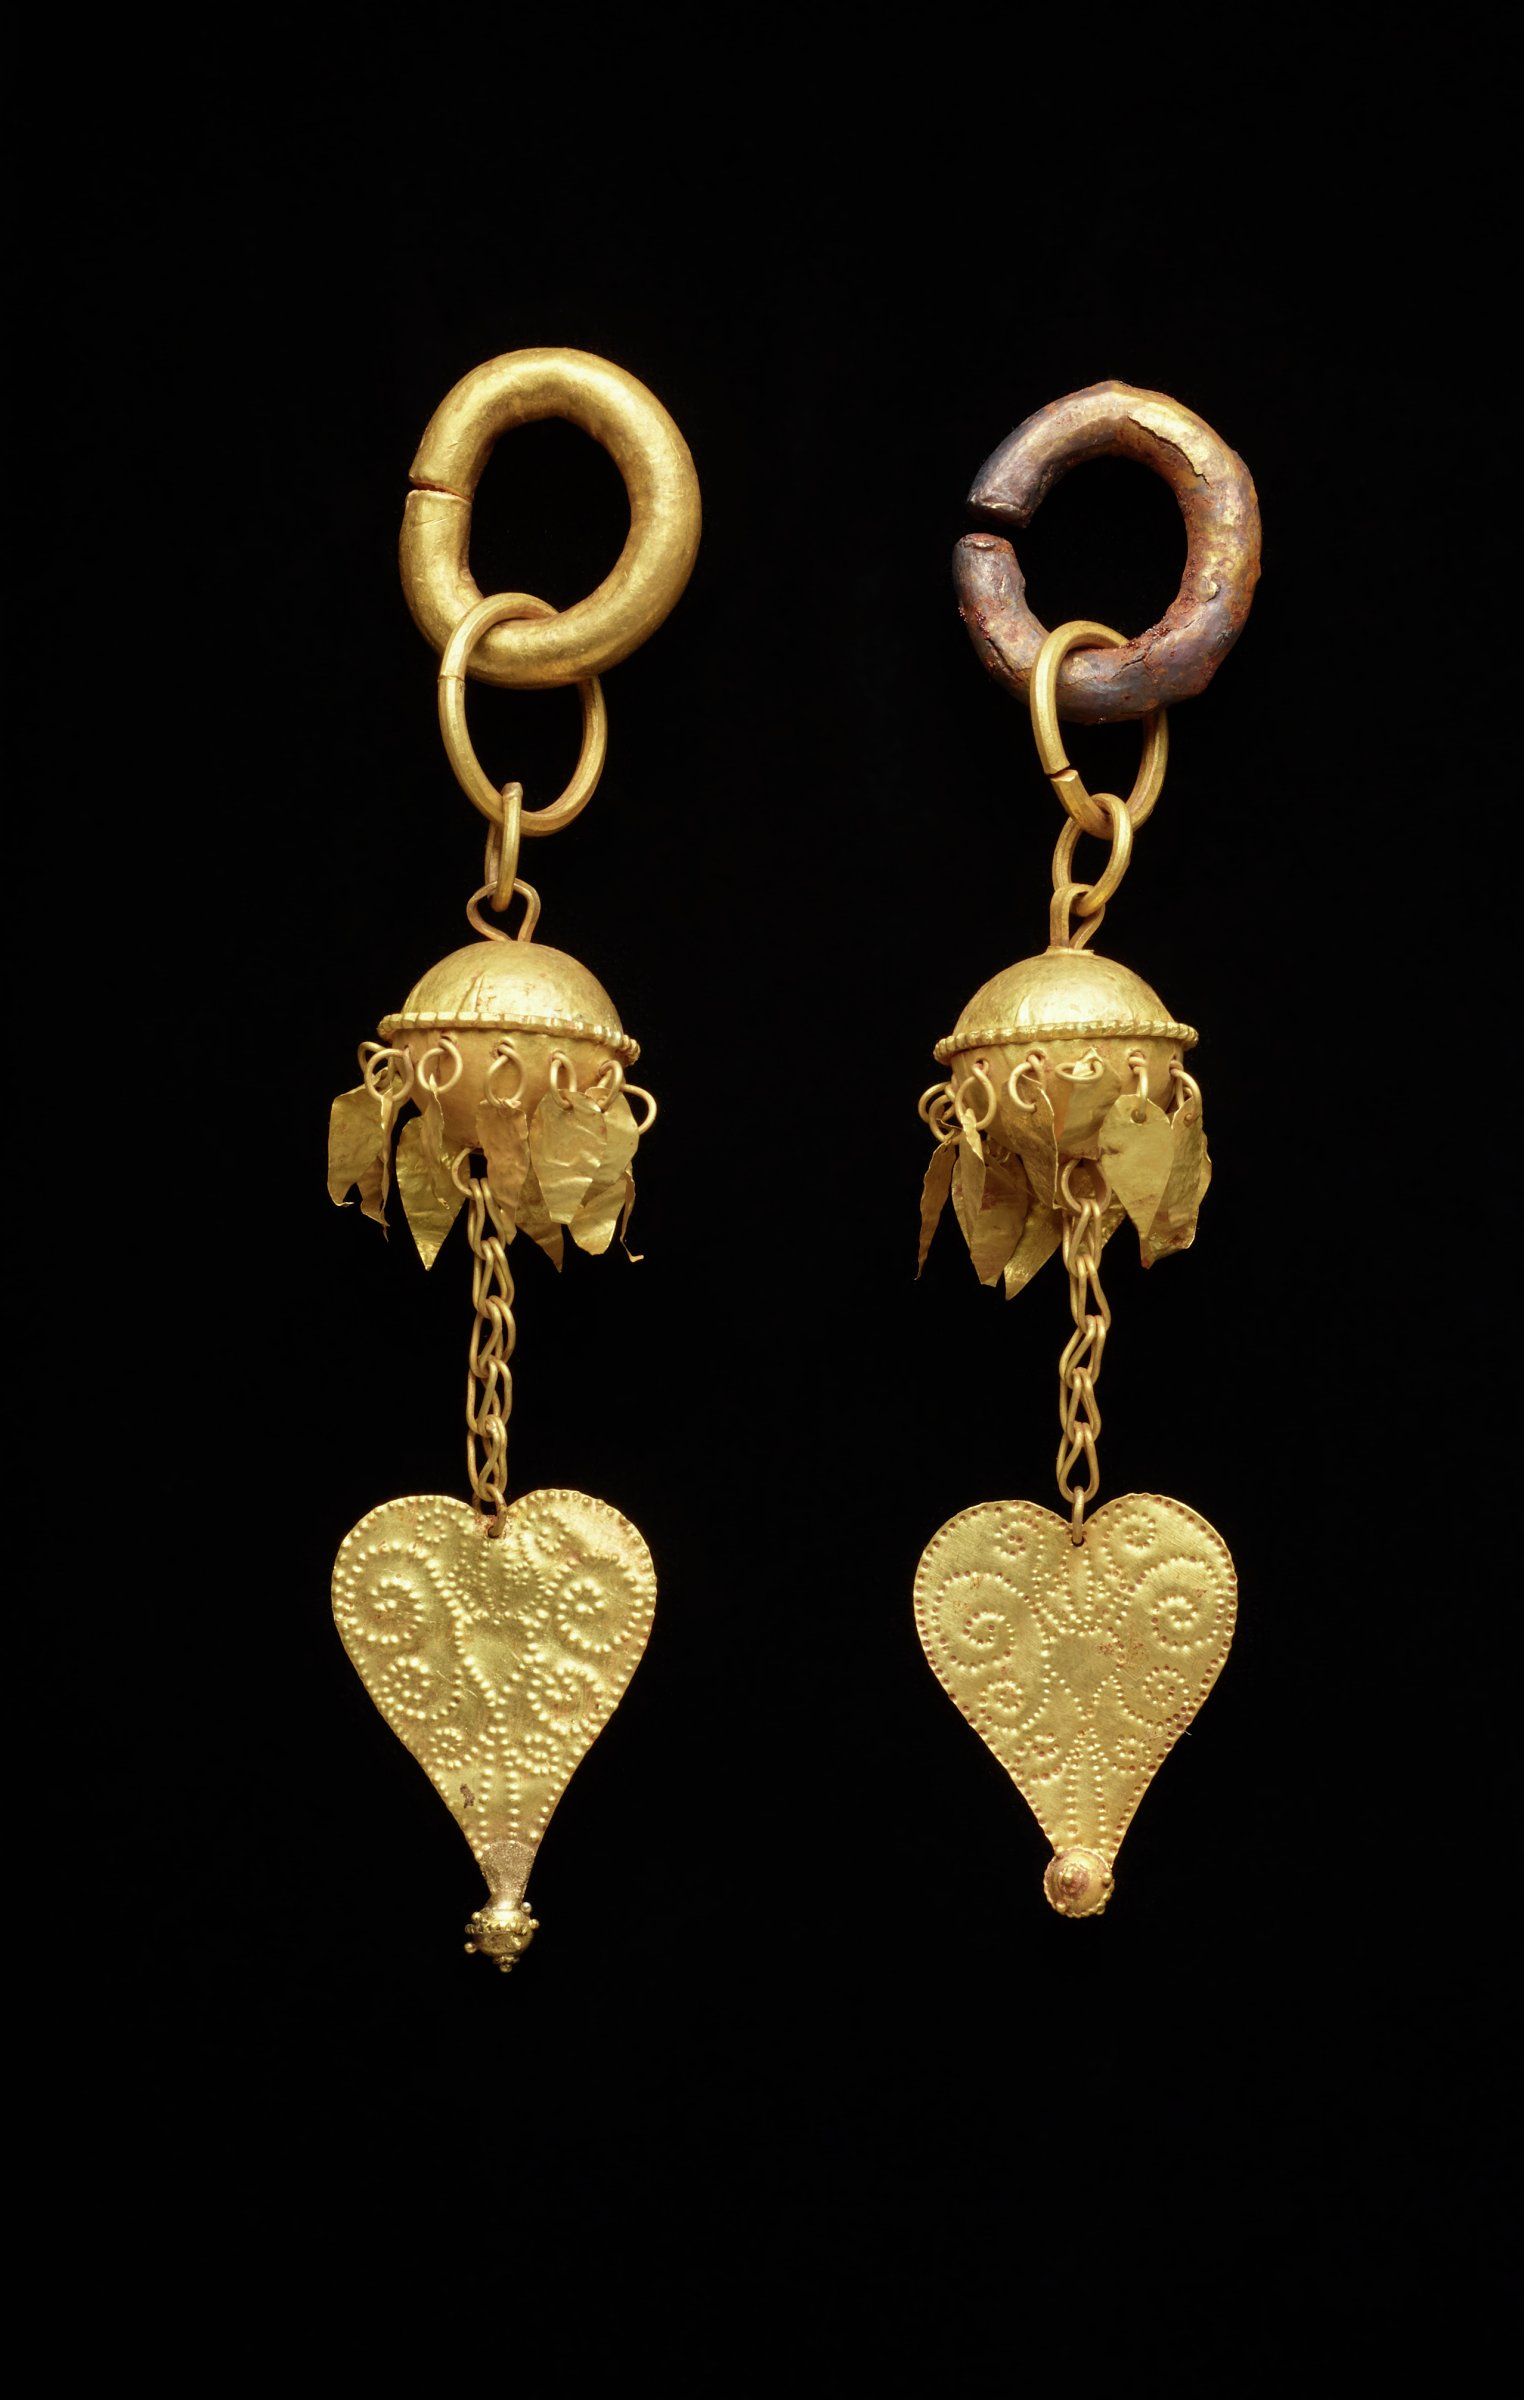 Heavy gold loops that have a slit in them are at the top of the earrings.  The slits would have allowed the wearer to slip them on their earlobes. Gold balls decorated with small gold suspended bangles form the center, with openwork gold heart-shaped pendants at the bottom. Granulation on finials with one finial bent.